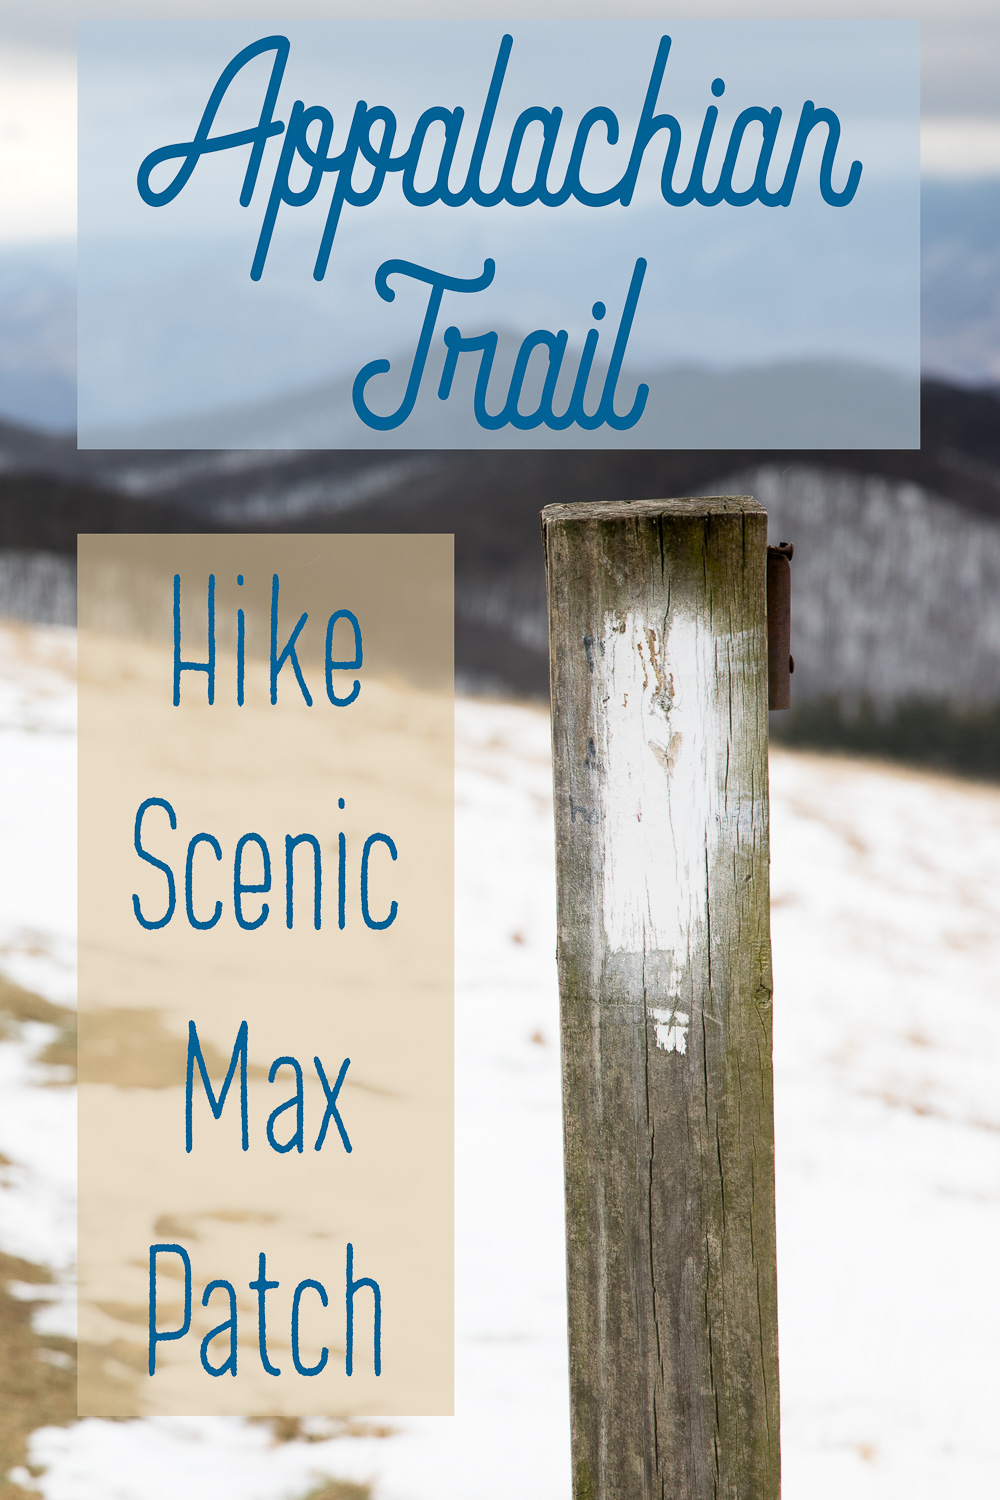 Appalachian Trail - Hike Max Patch, famous for its fantastic views!